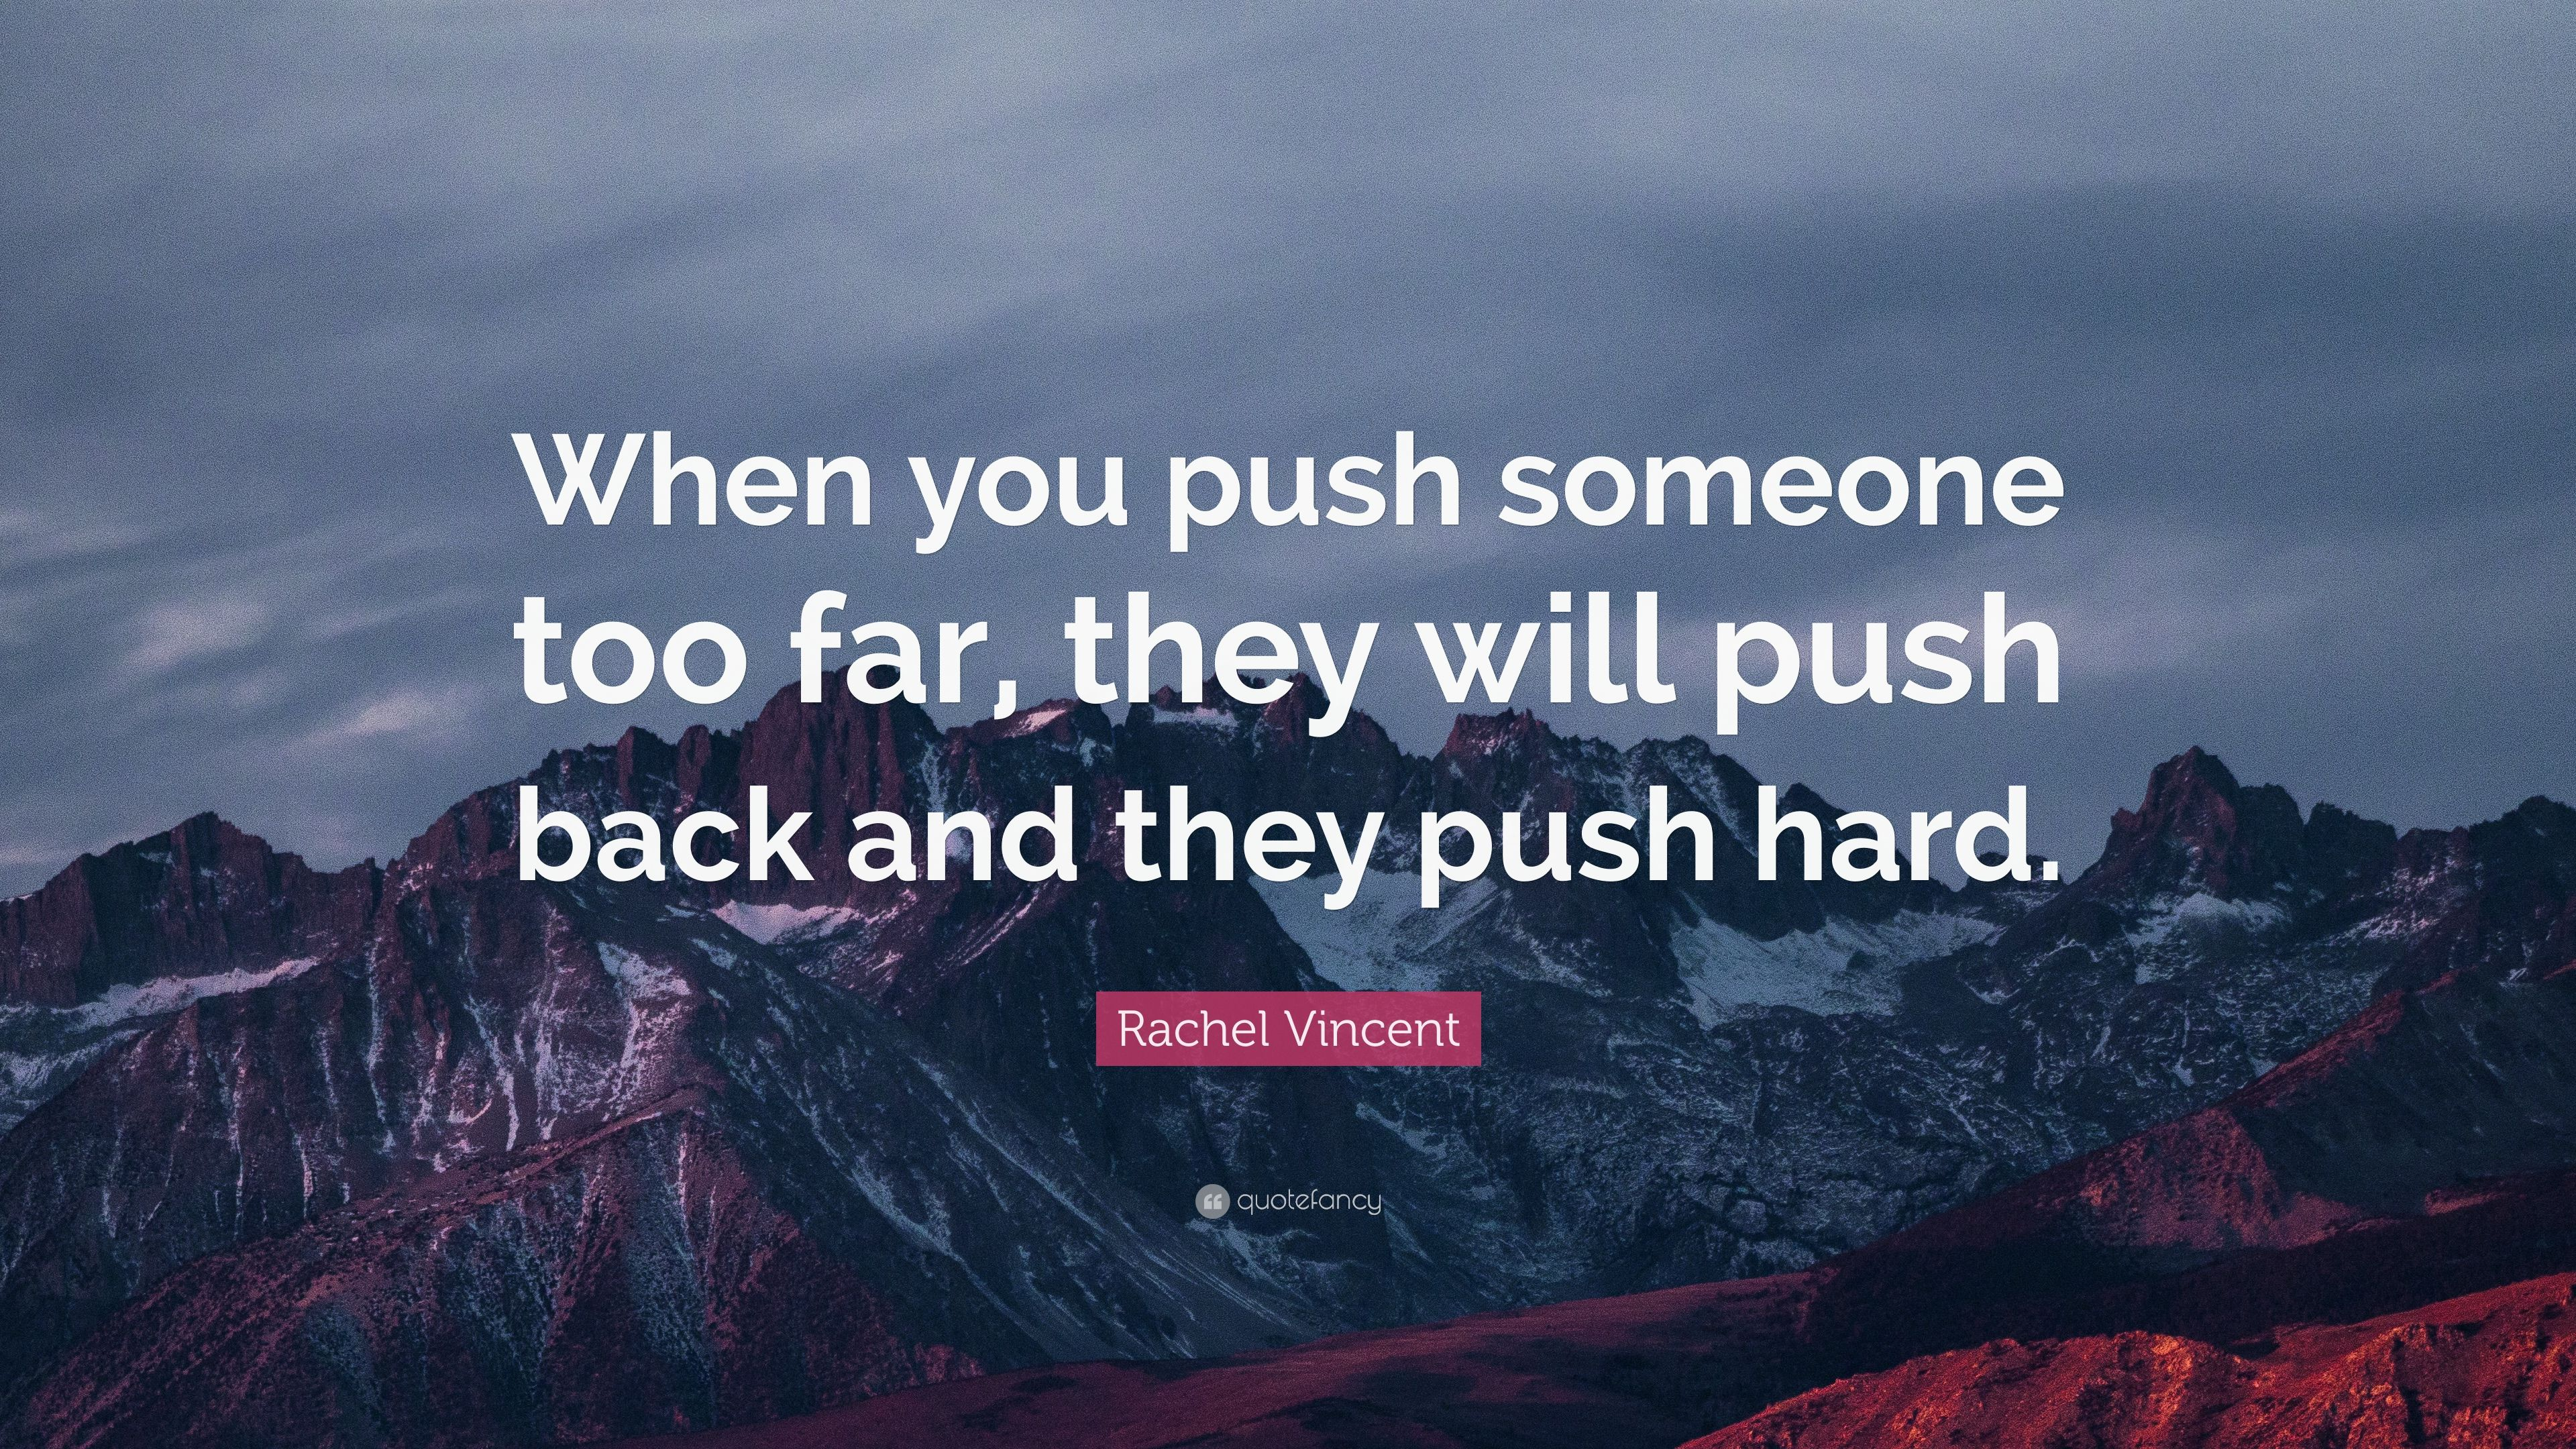 Rachel Vincent Quote When You Push Someone Too Far They Will Push